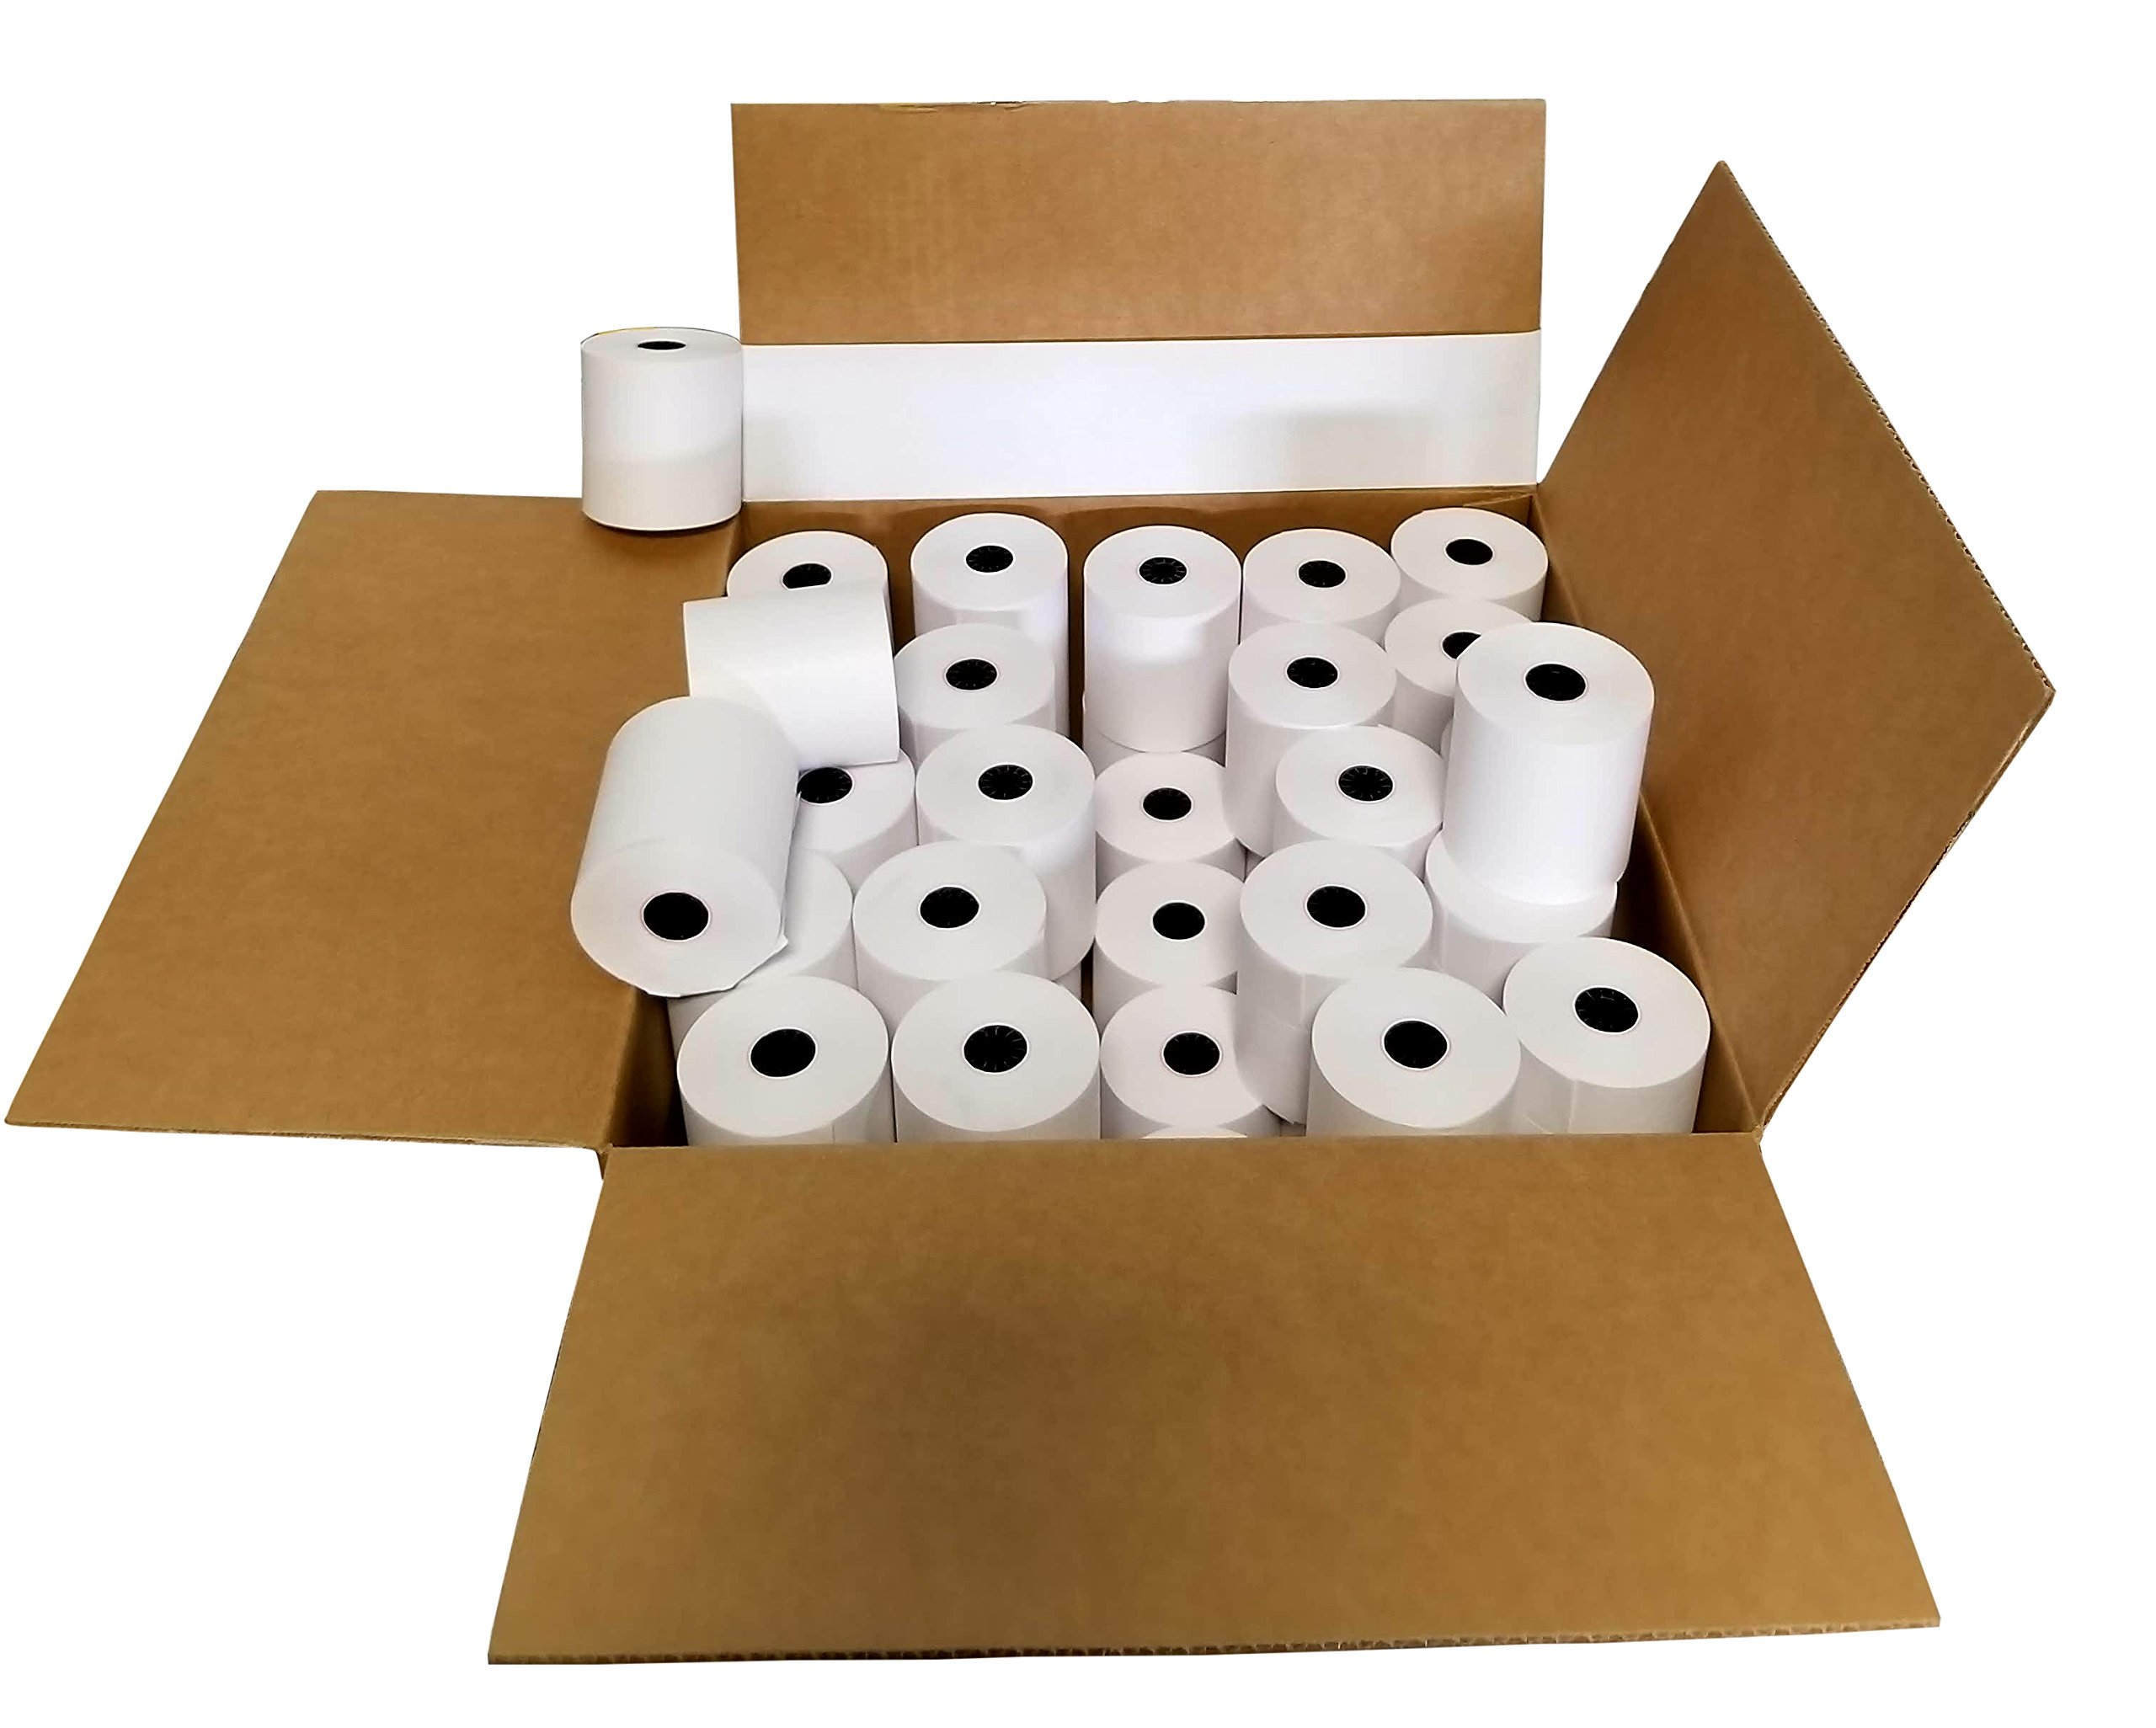 STAR SP700 3'' x 165' BOND (NON-THERMAL) PoS PAPER - 50 NEW ROLLS by WRB SUPPLY